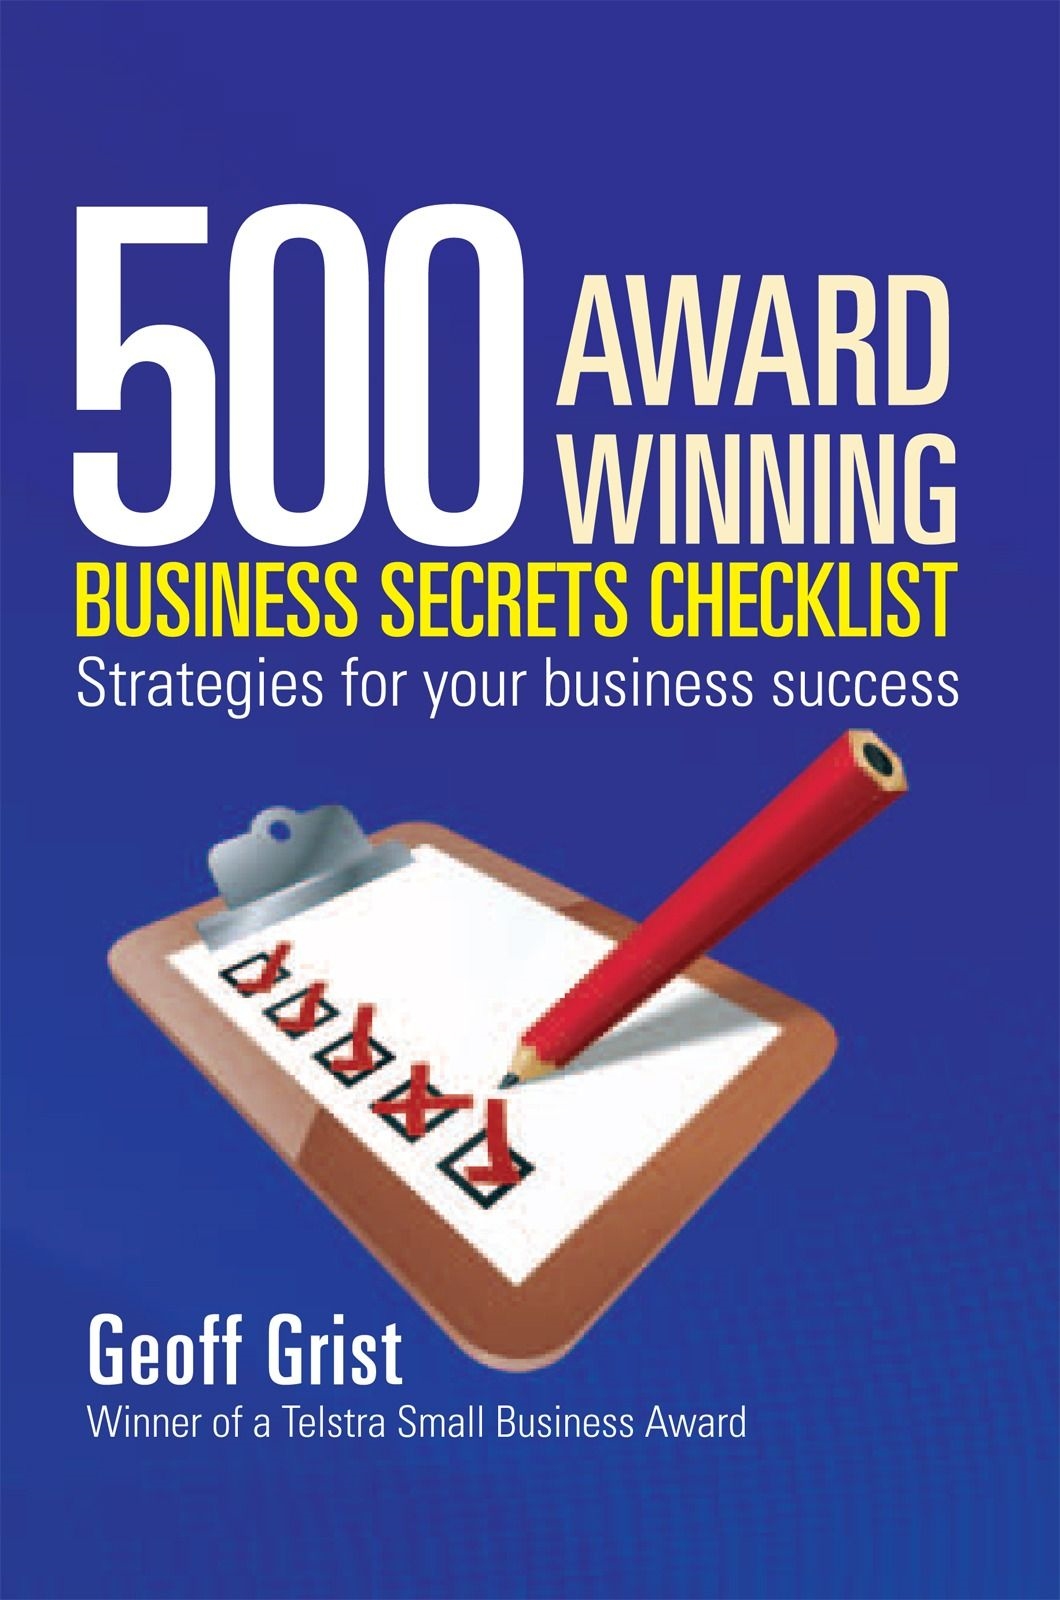 500 AWARD WINNING BUSINESS SECRETS CHECKLIST